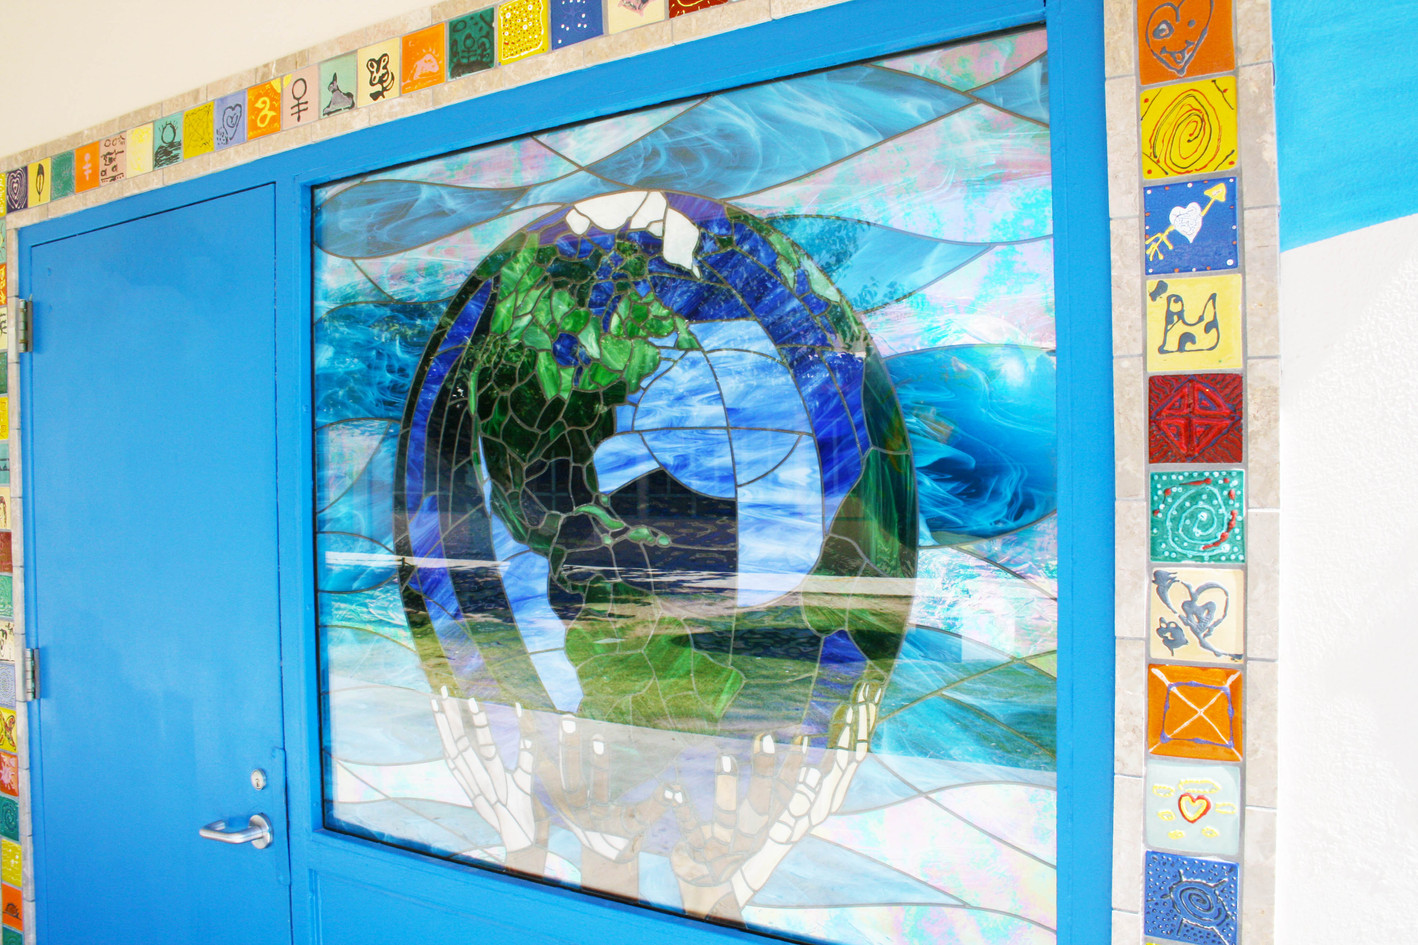 Stained glass mosaic world at Harding Elementary School